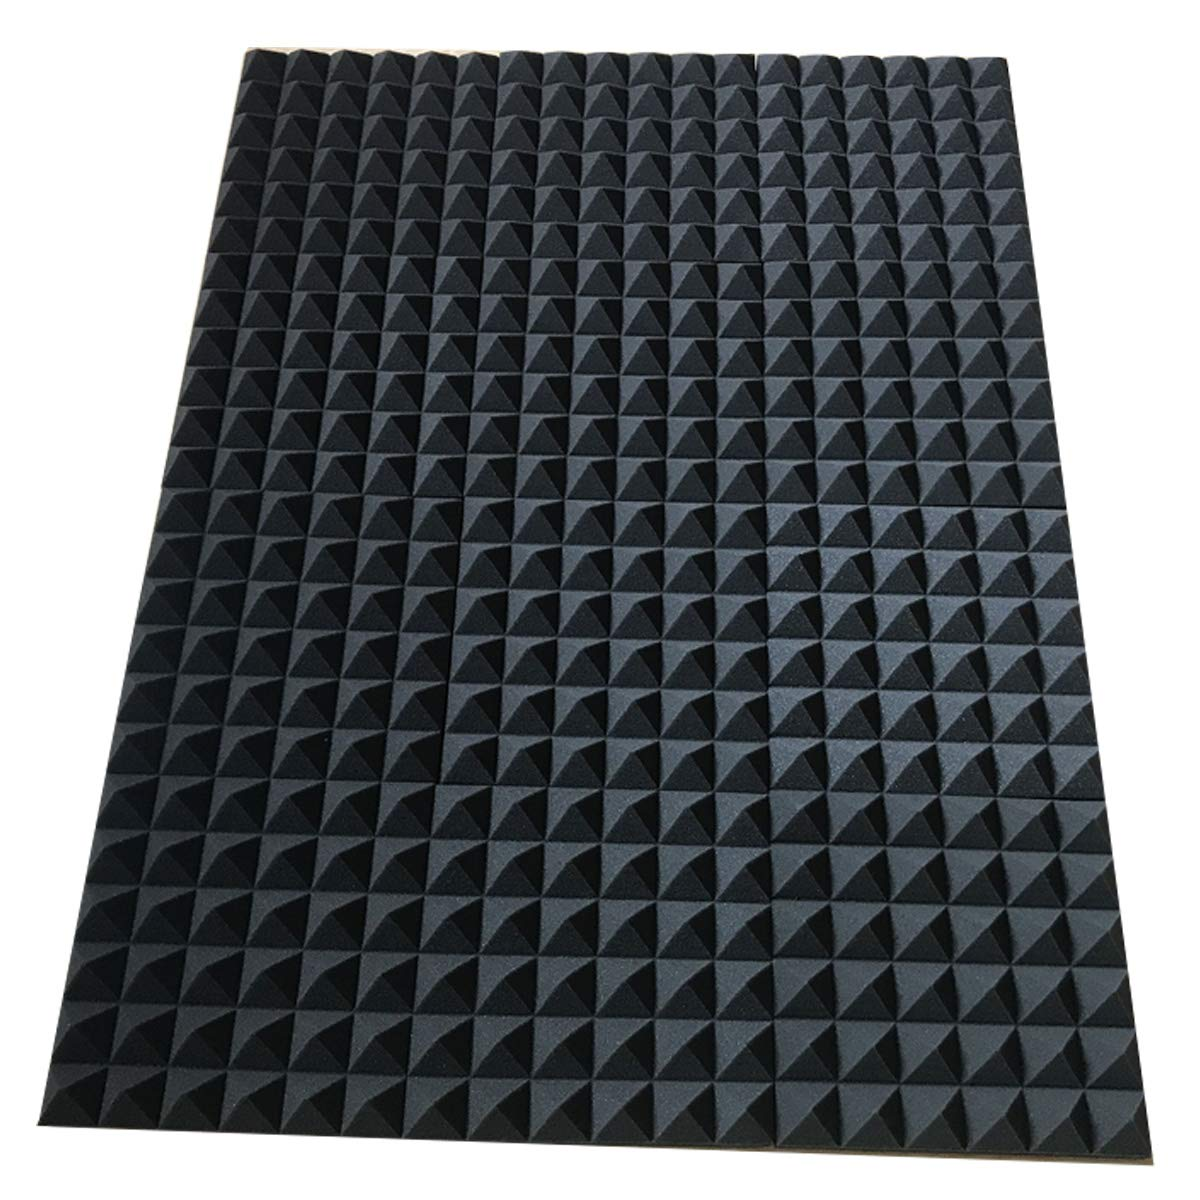 "Acoustic Foam Sound Absorption Pyramid Studio Treatment Wall Panel, 96"" X 72"" X 2"" - KINGDOM OF FABRICS"